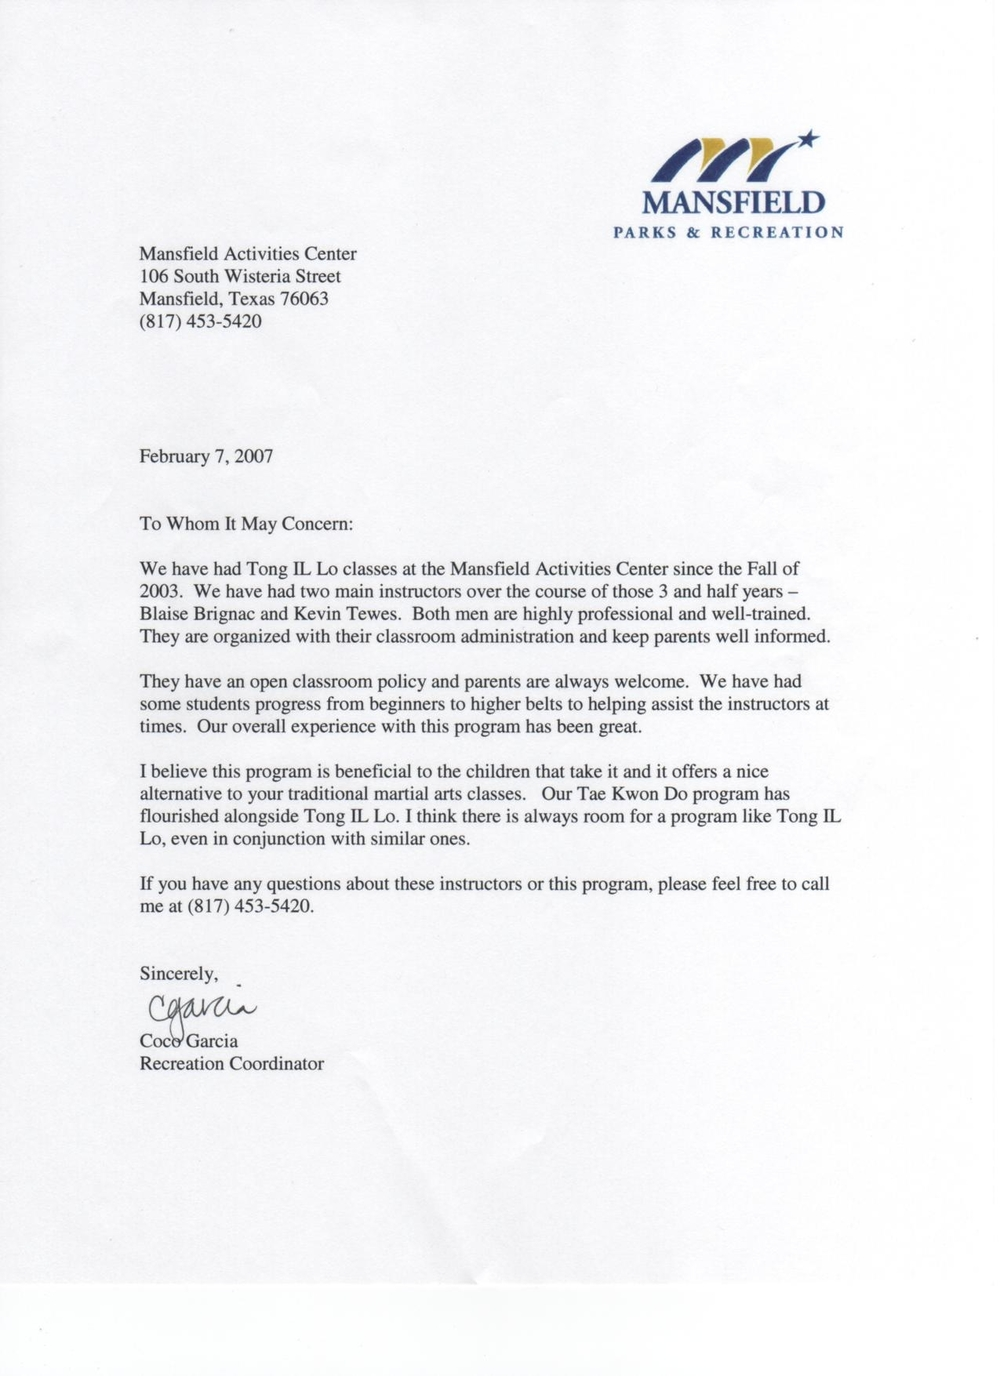 Mansfield Recommendation Letter.JPG